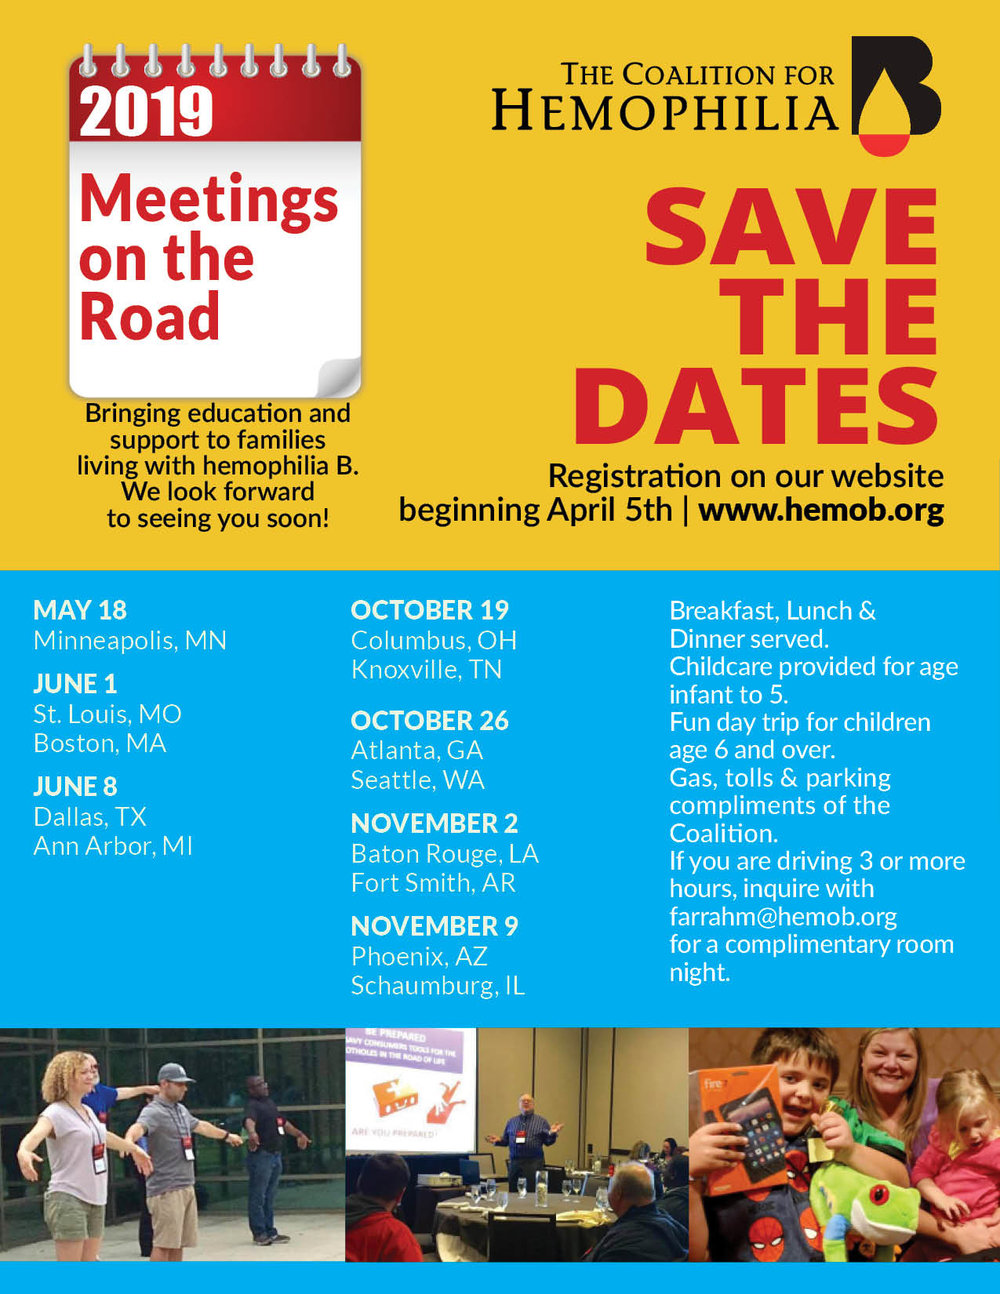 Download our 2019 Meetings Flyer